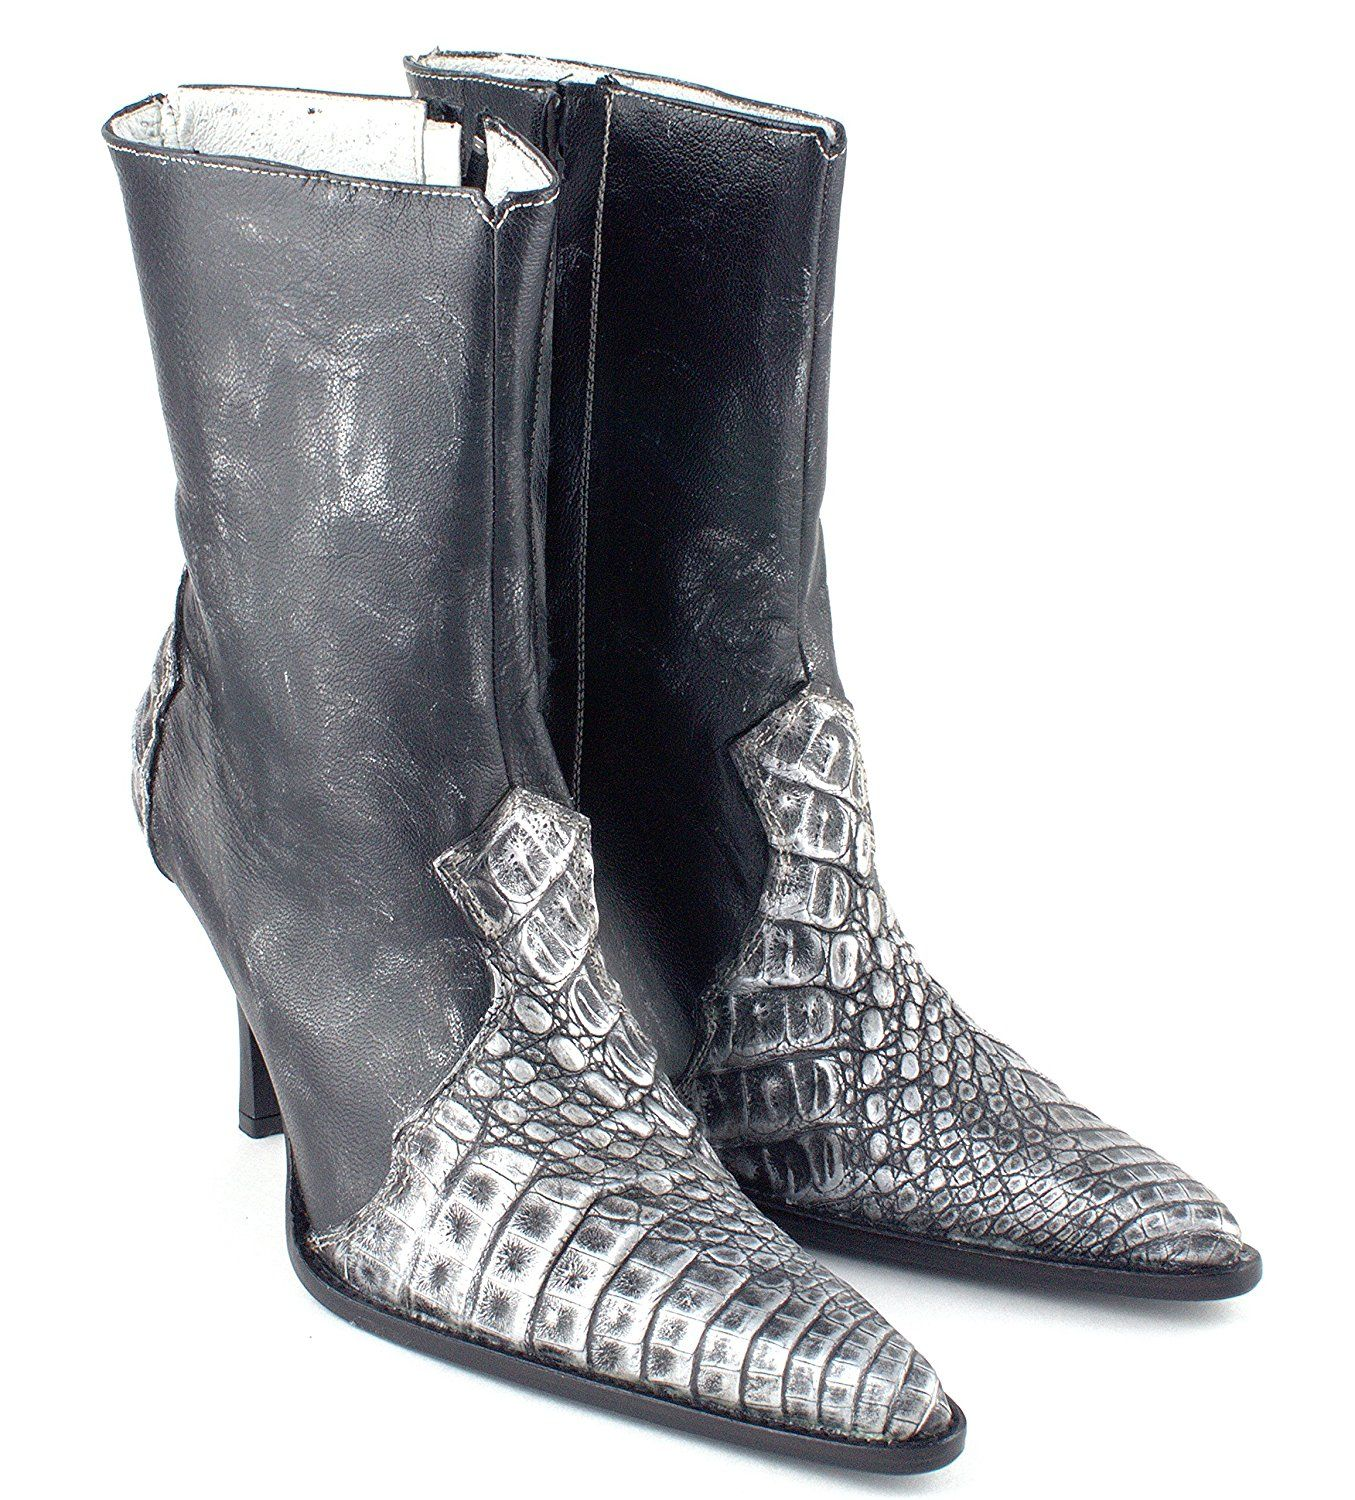 Women Luxury Caiman Leather Dress Boot Shoe High Heel